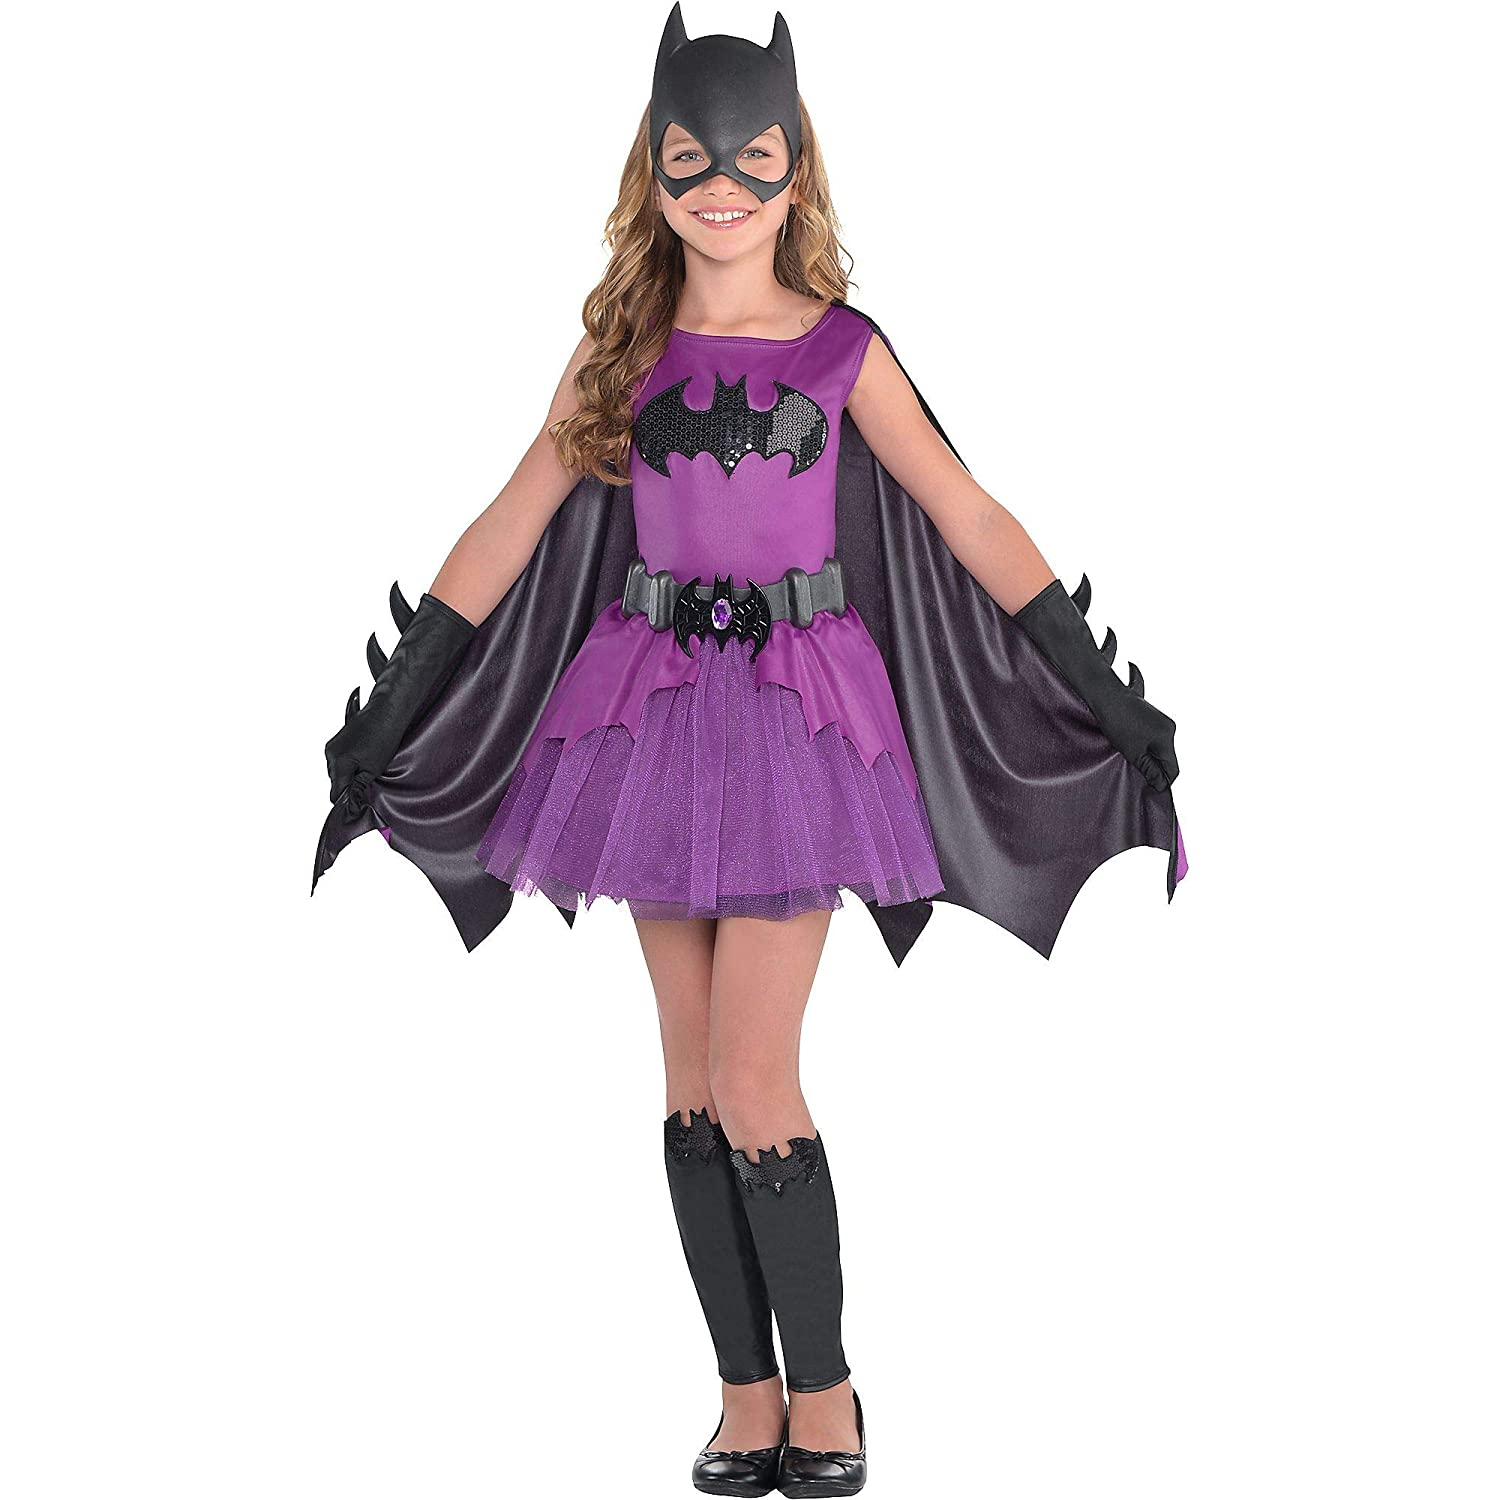 Size 12 Girls Halloween Costumes.Suit Yourself Purple Batgirl Halloween Costume For Girls Dc S Batman Family Large Size 12 14 Includes Accessories Amazon In Clothing Accessories